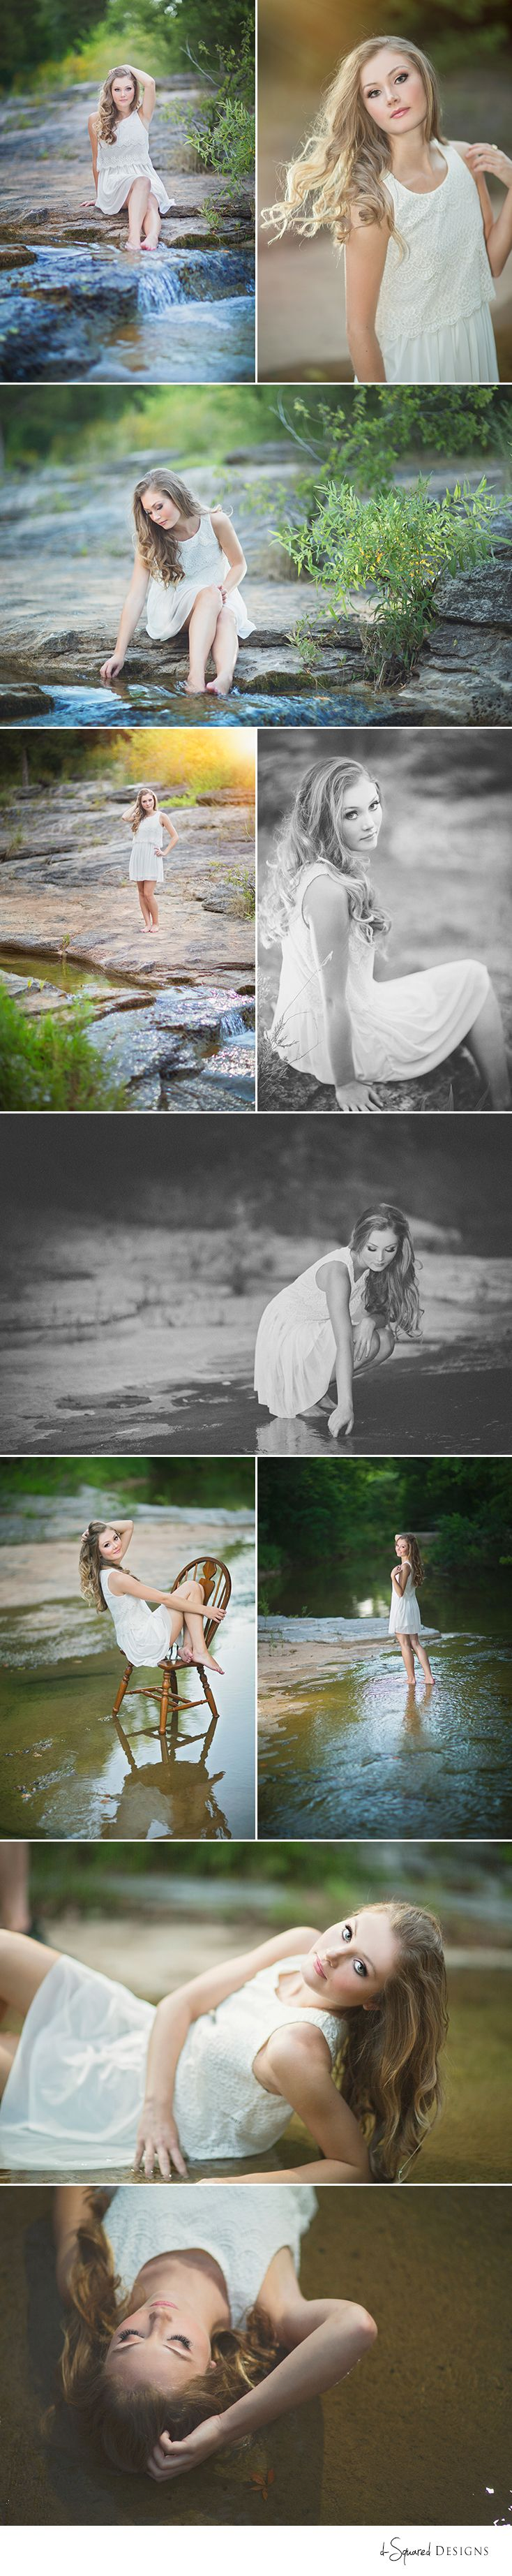 Senior girl photography by d-Squared Designs. St. Louis, MO Senior photographer. Missouri senior photographer. River and creek with water senior session. Water ideas. Beautiful senior girl. Senior session. Senior inspiration. Click on image for full session!